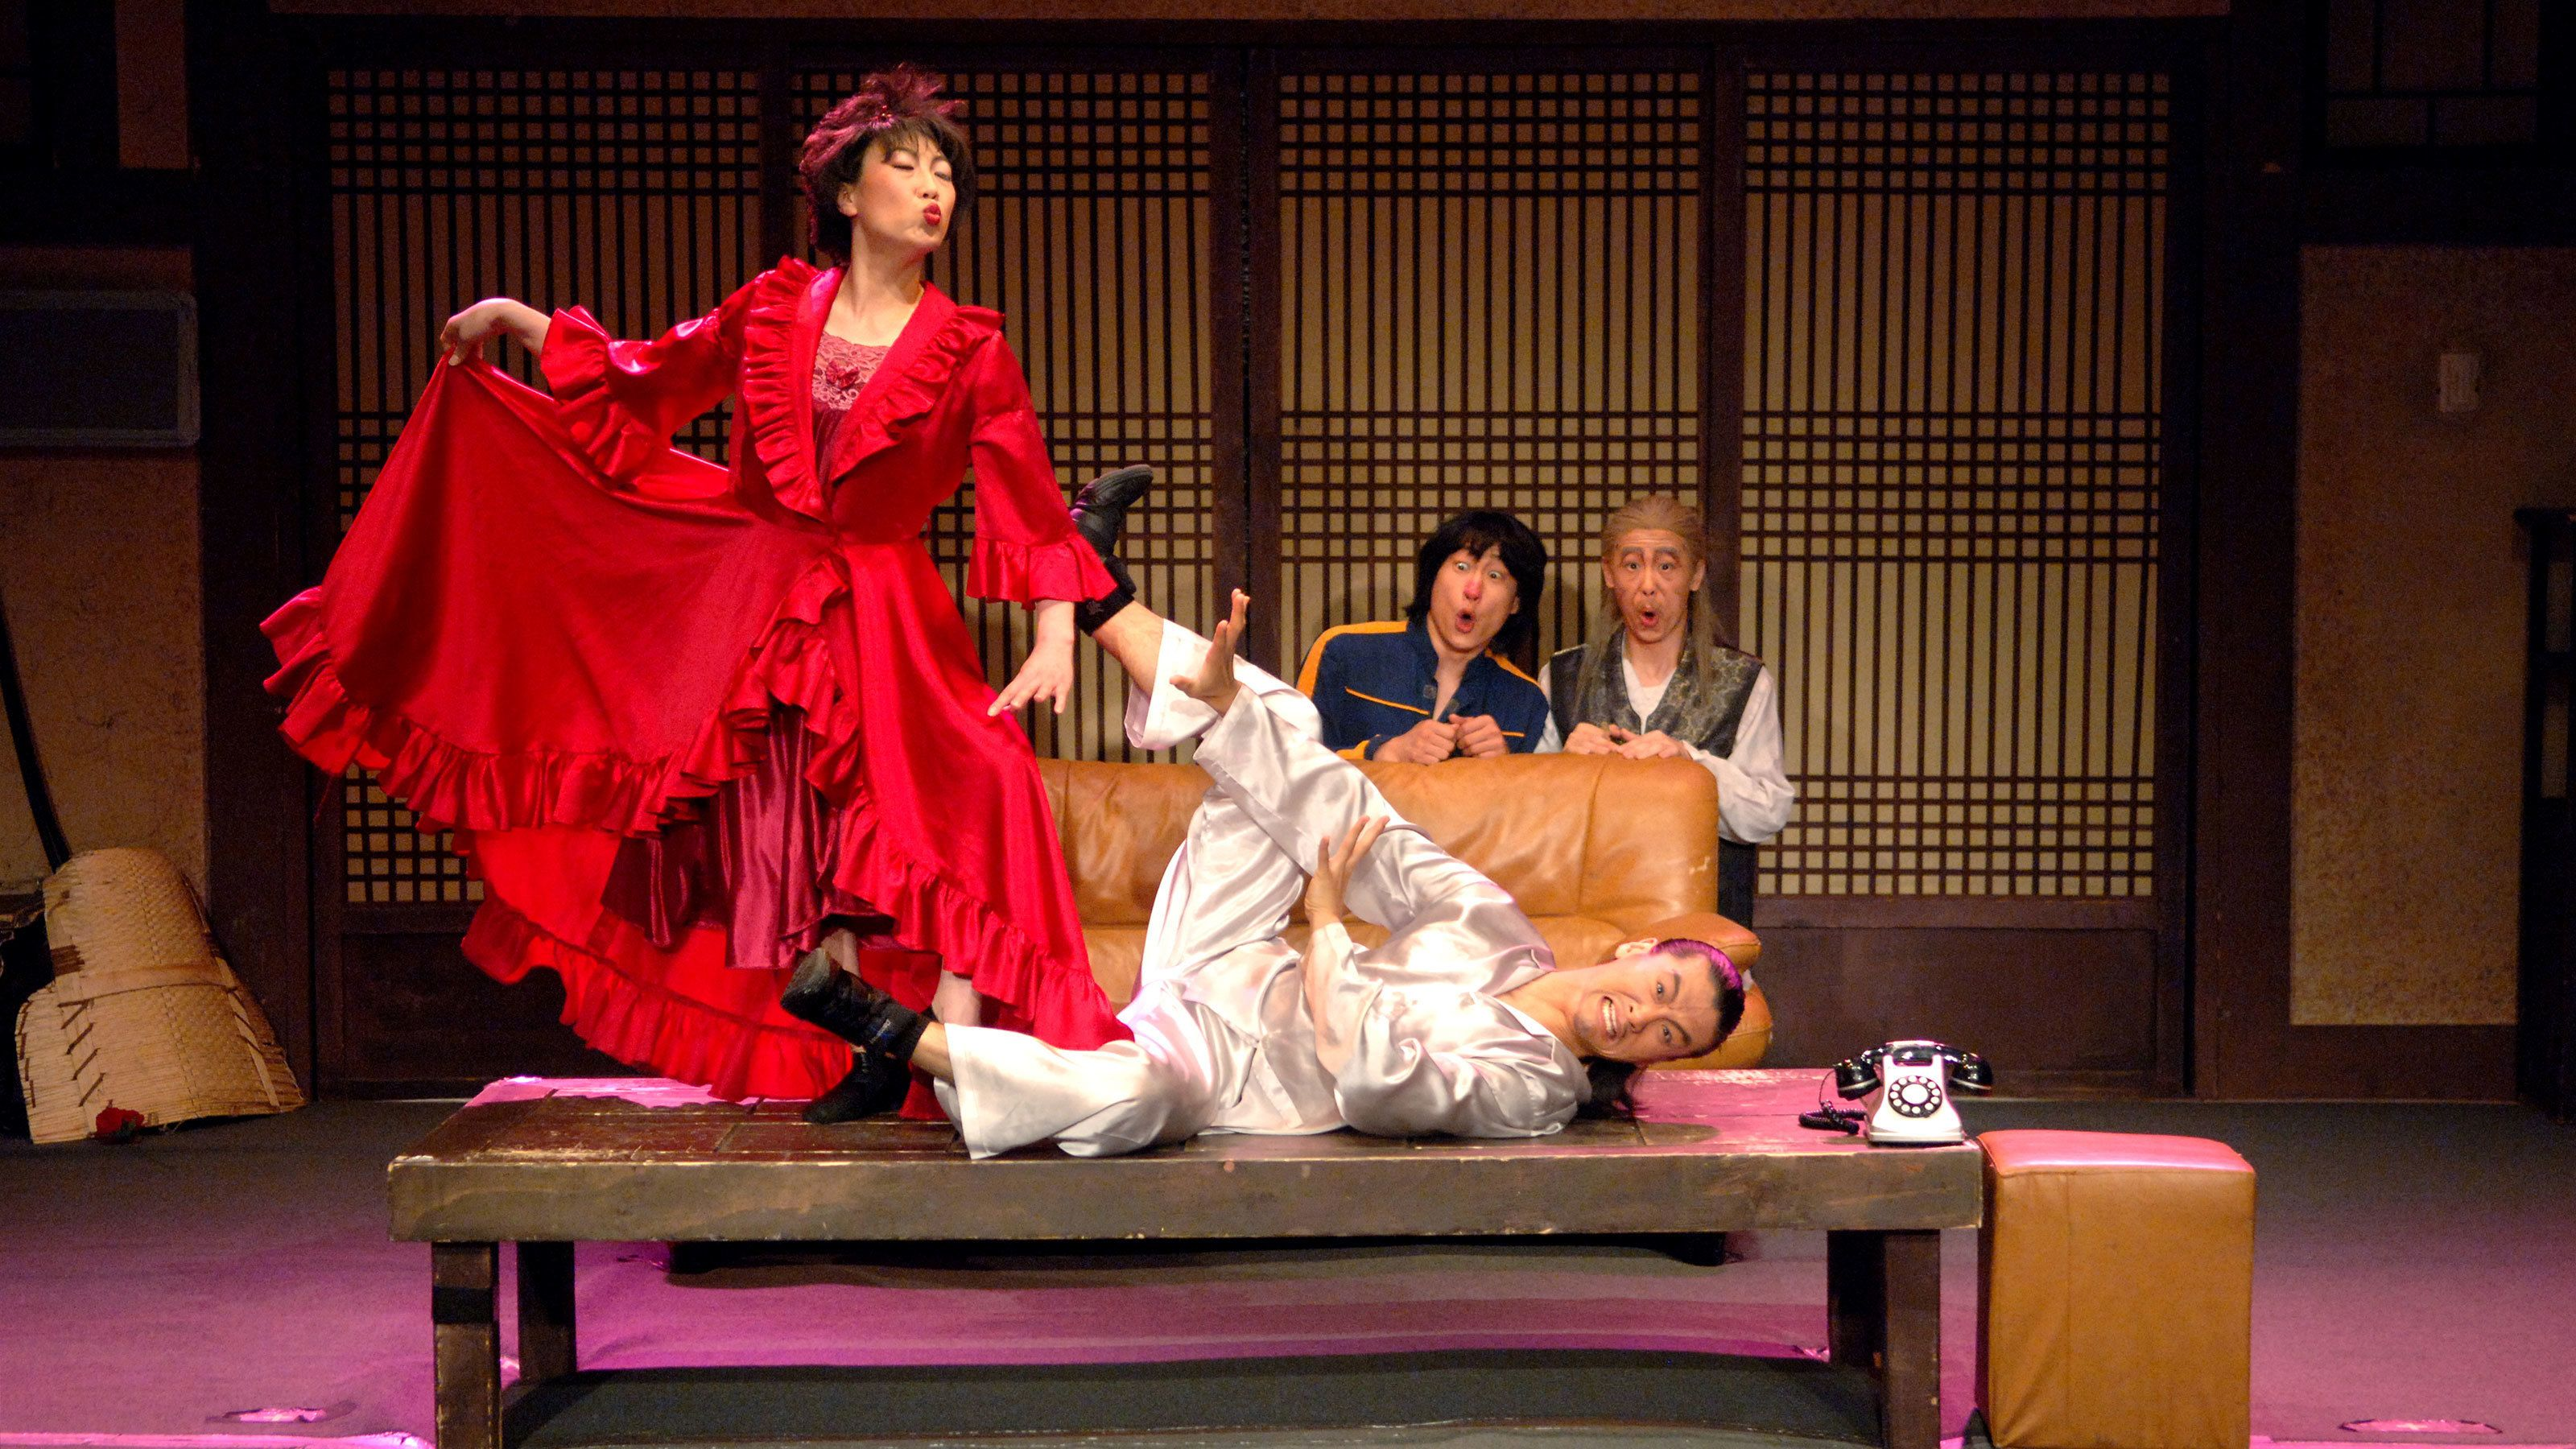 woman in red dress on stage with other performers in Seoul